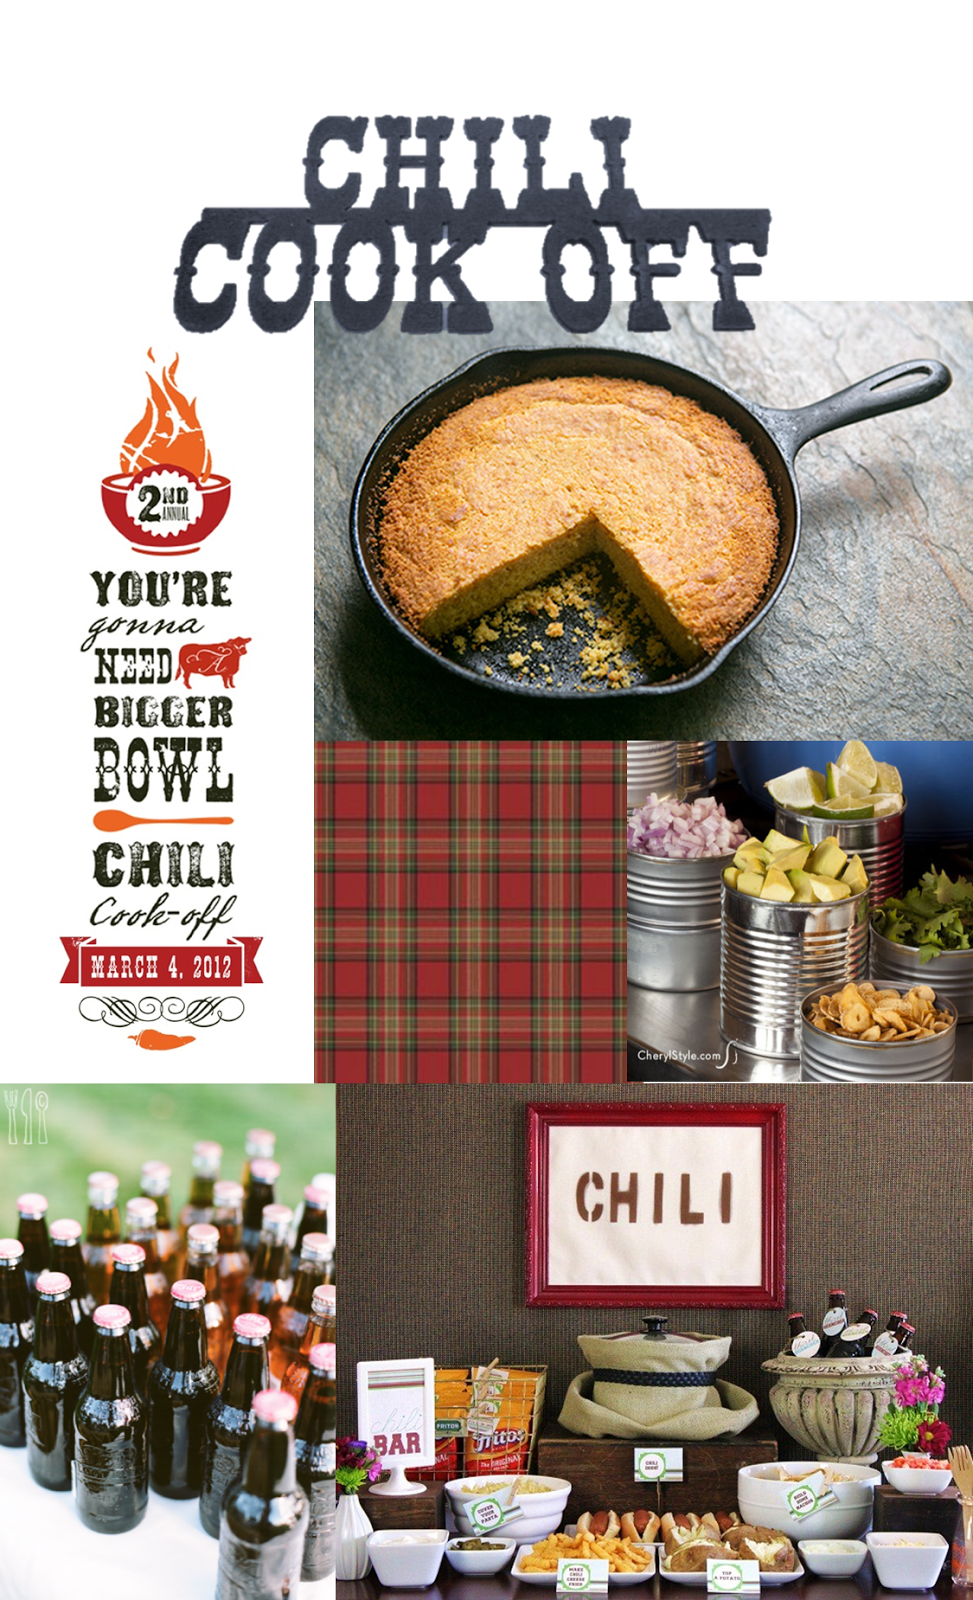 chili cook off, chili cook off party inspiration, fall party ideas, chili bar #chilibar